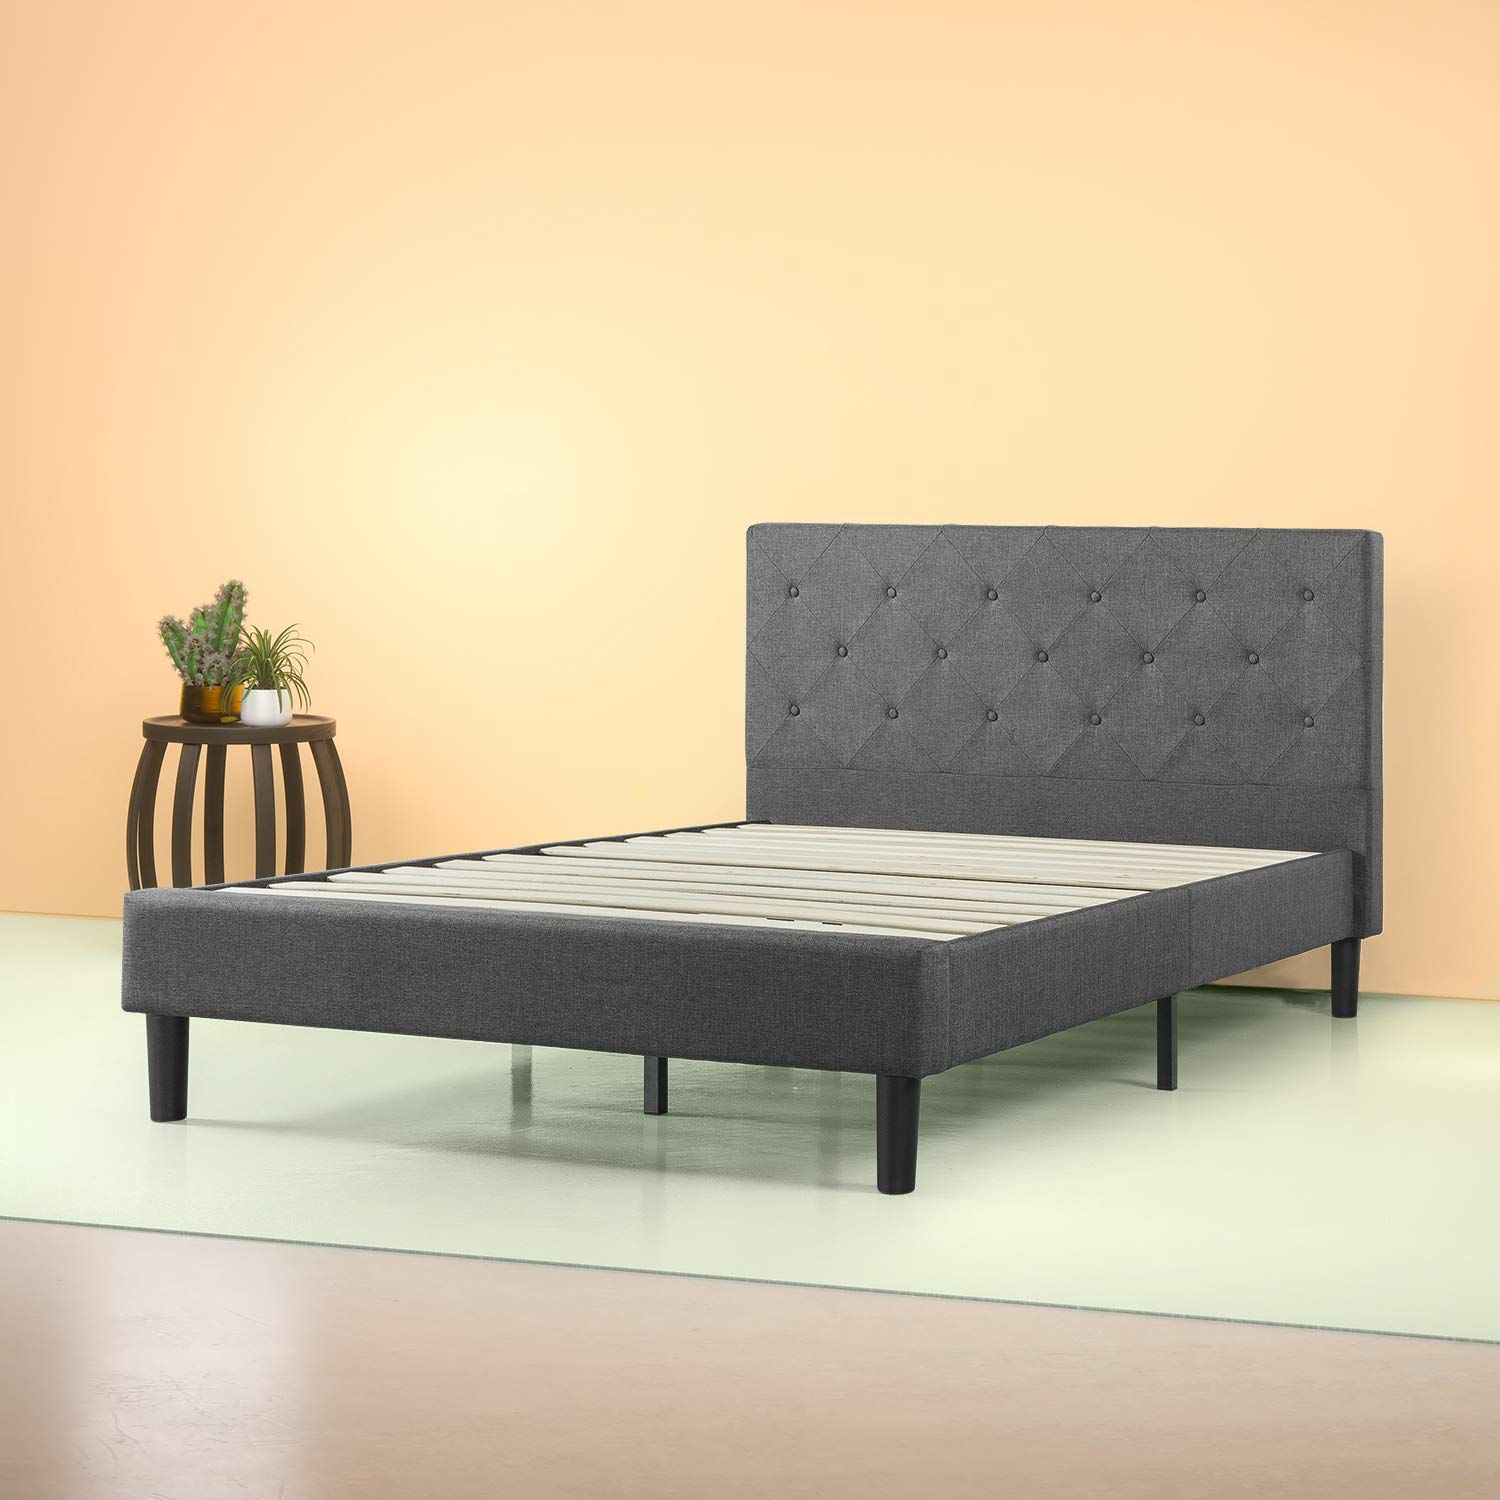 Zinus Upholstered Diamond Stitched Platform Bed As an